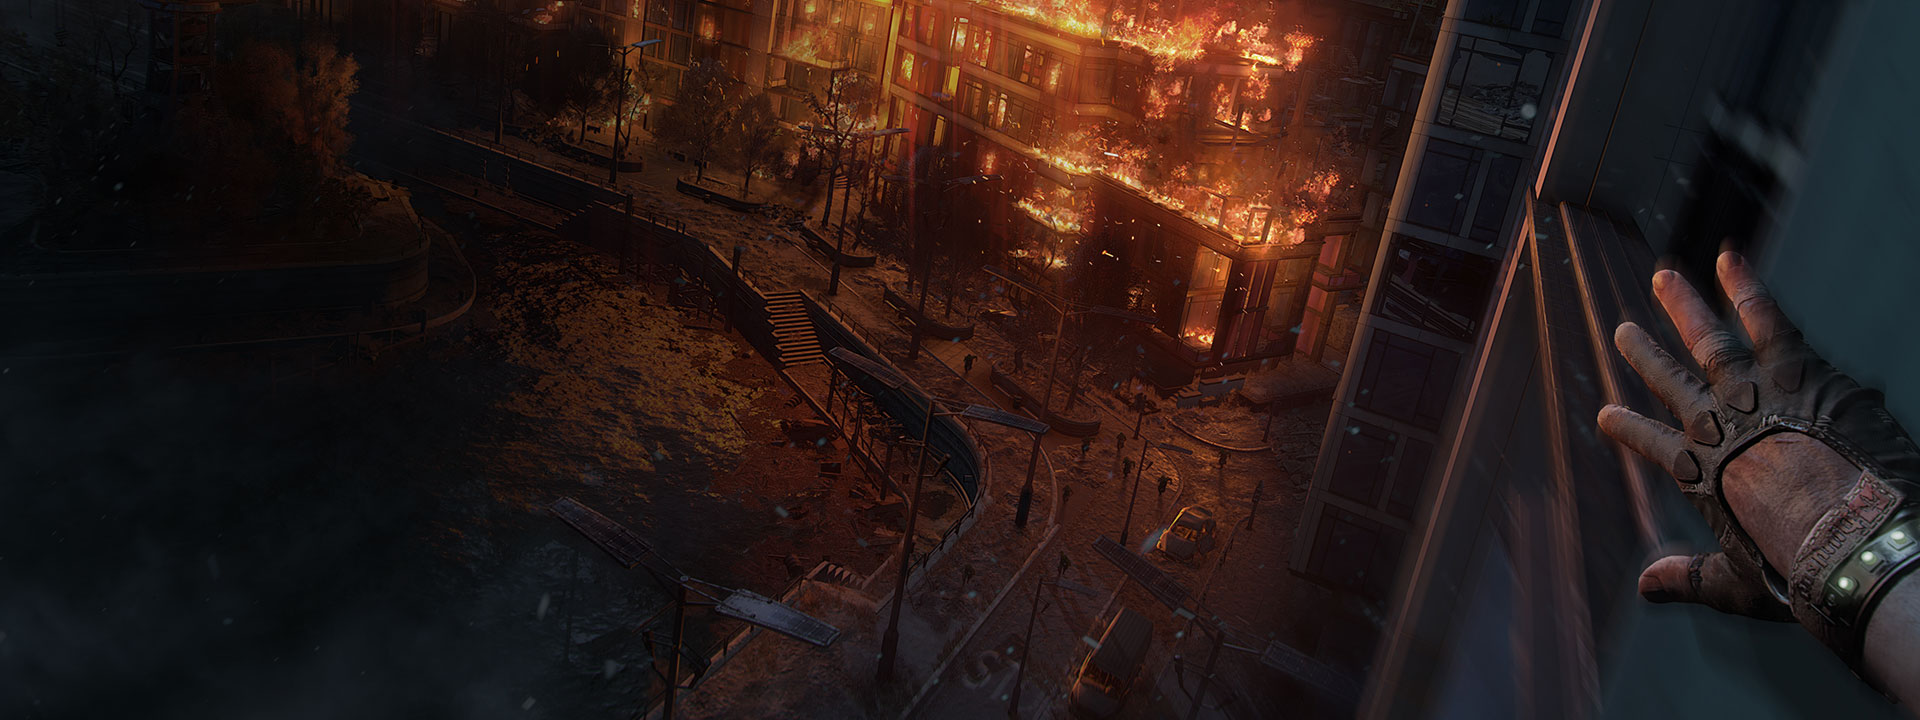 Character view of a burning building